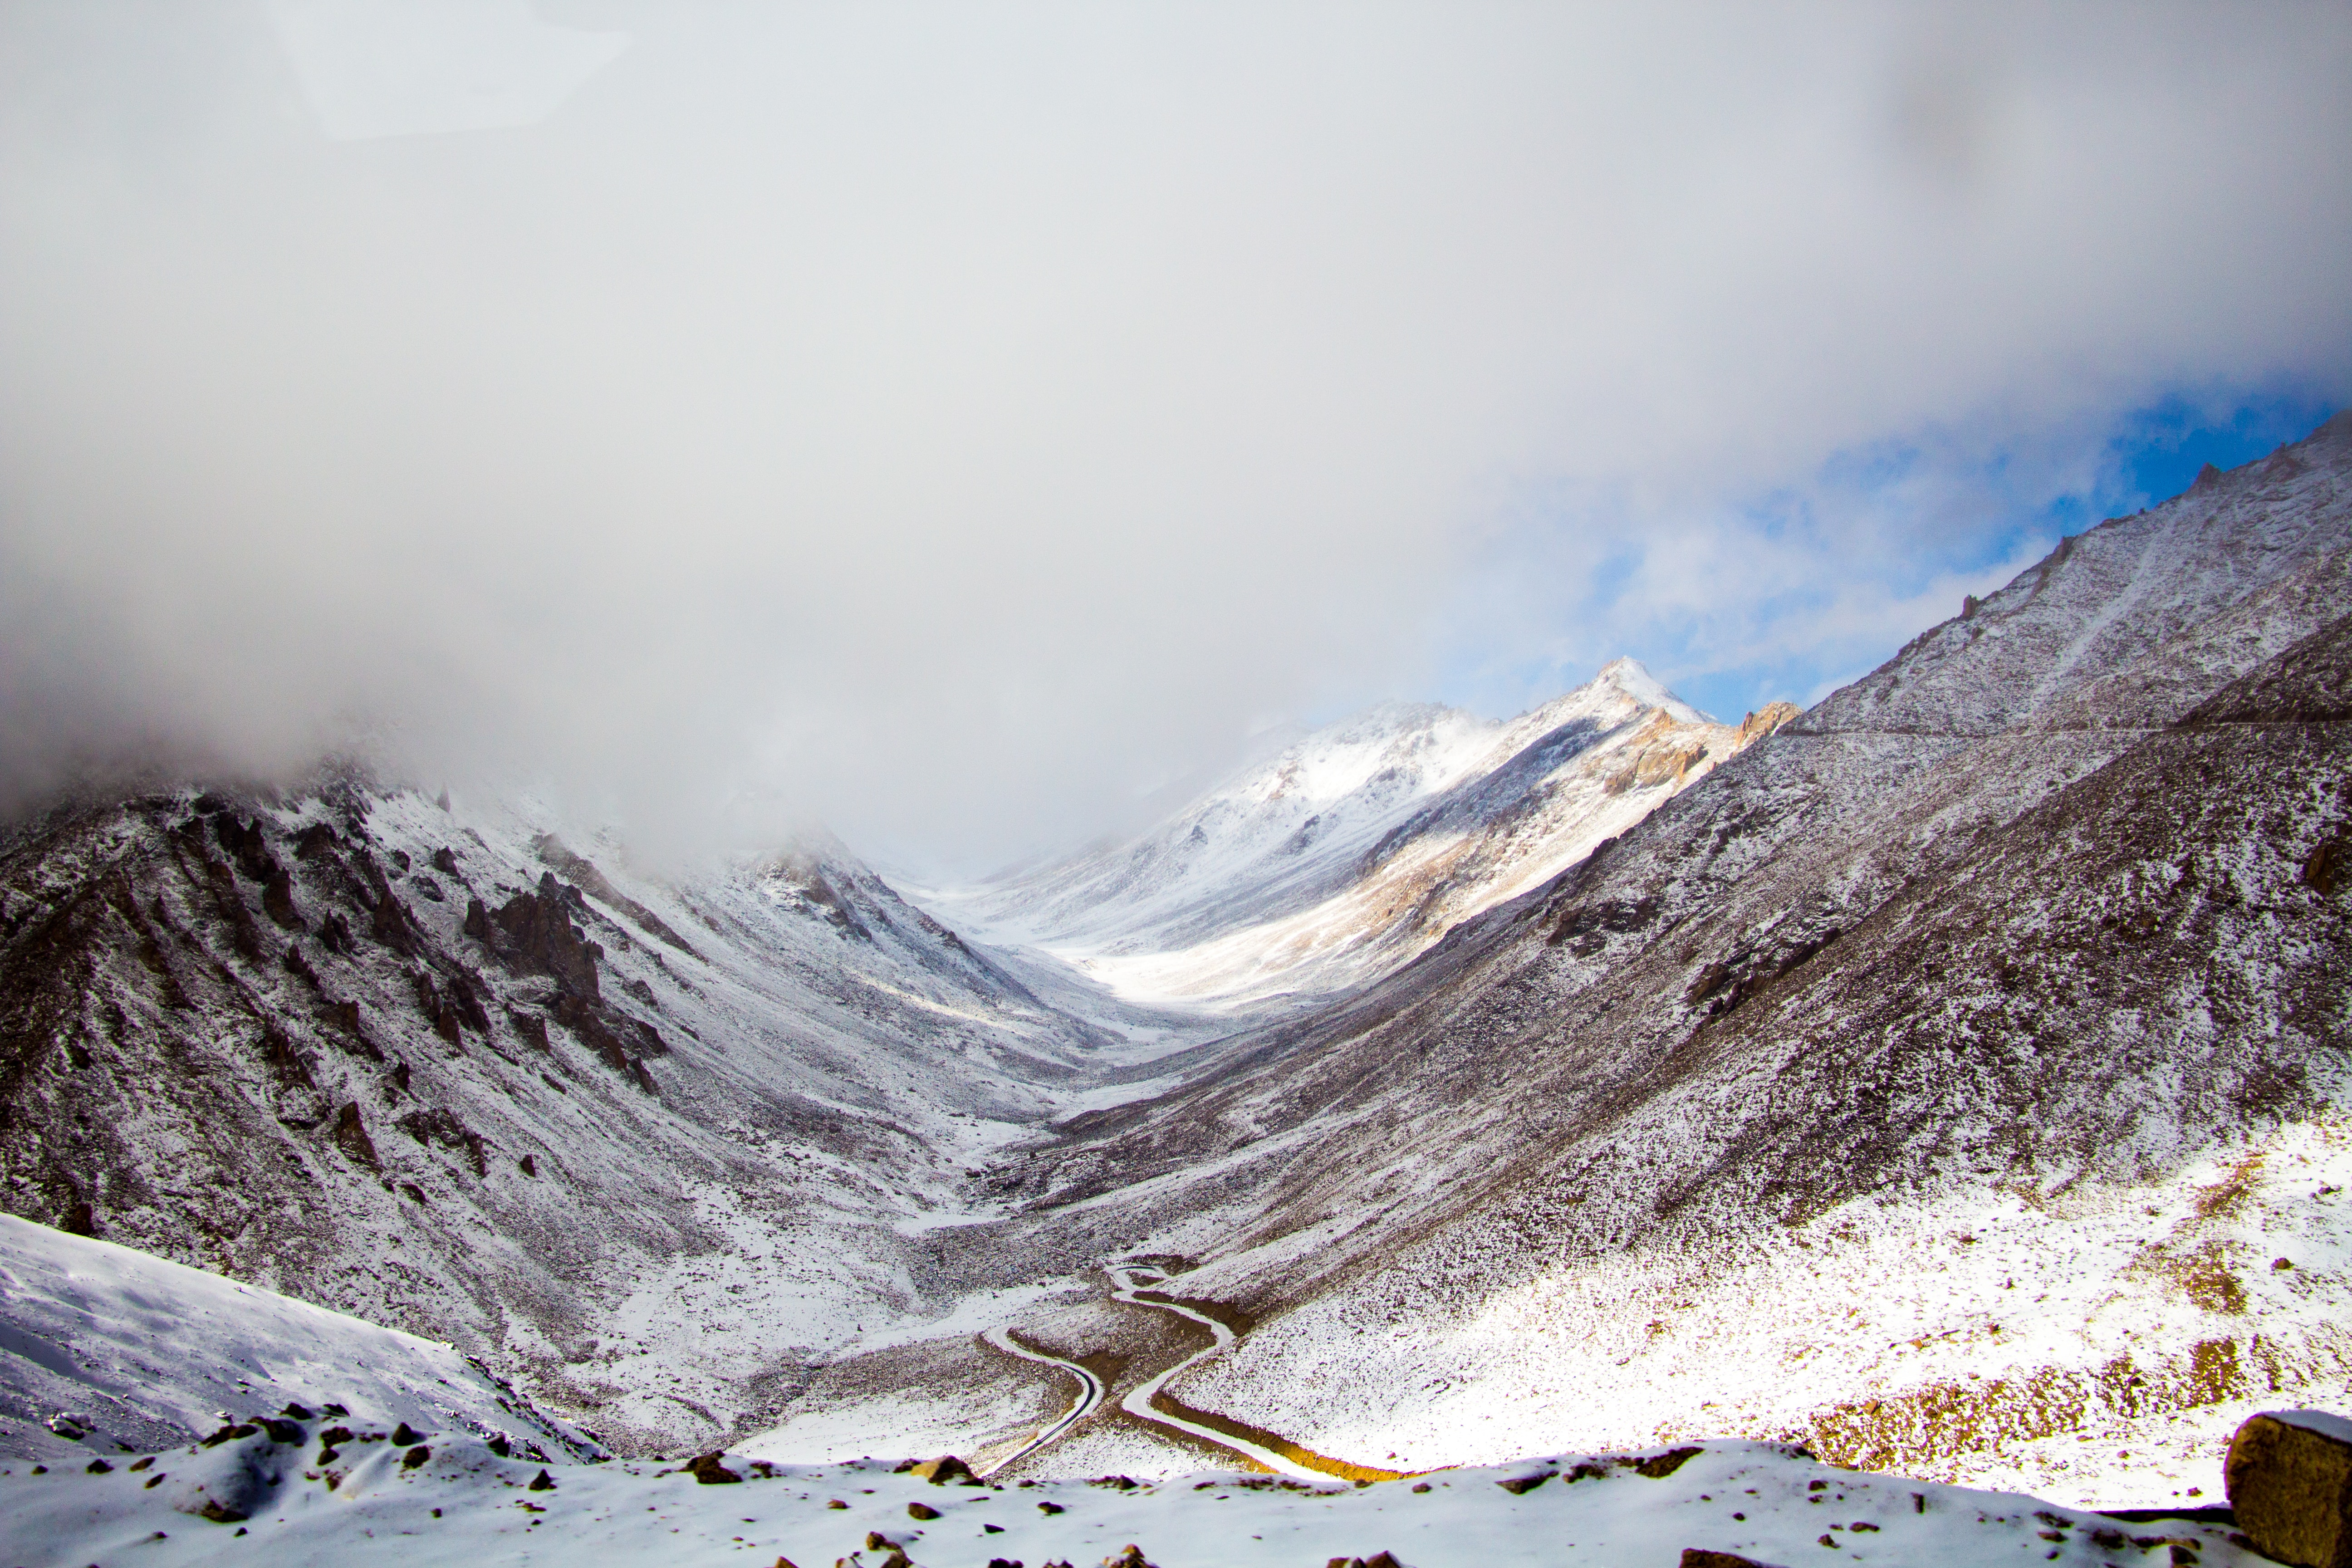 Scenic photography of snowy mountains